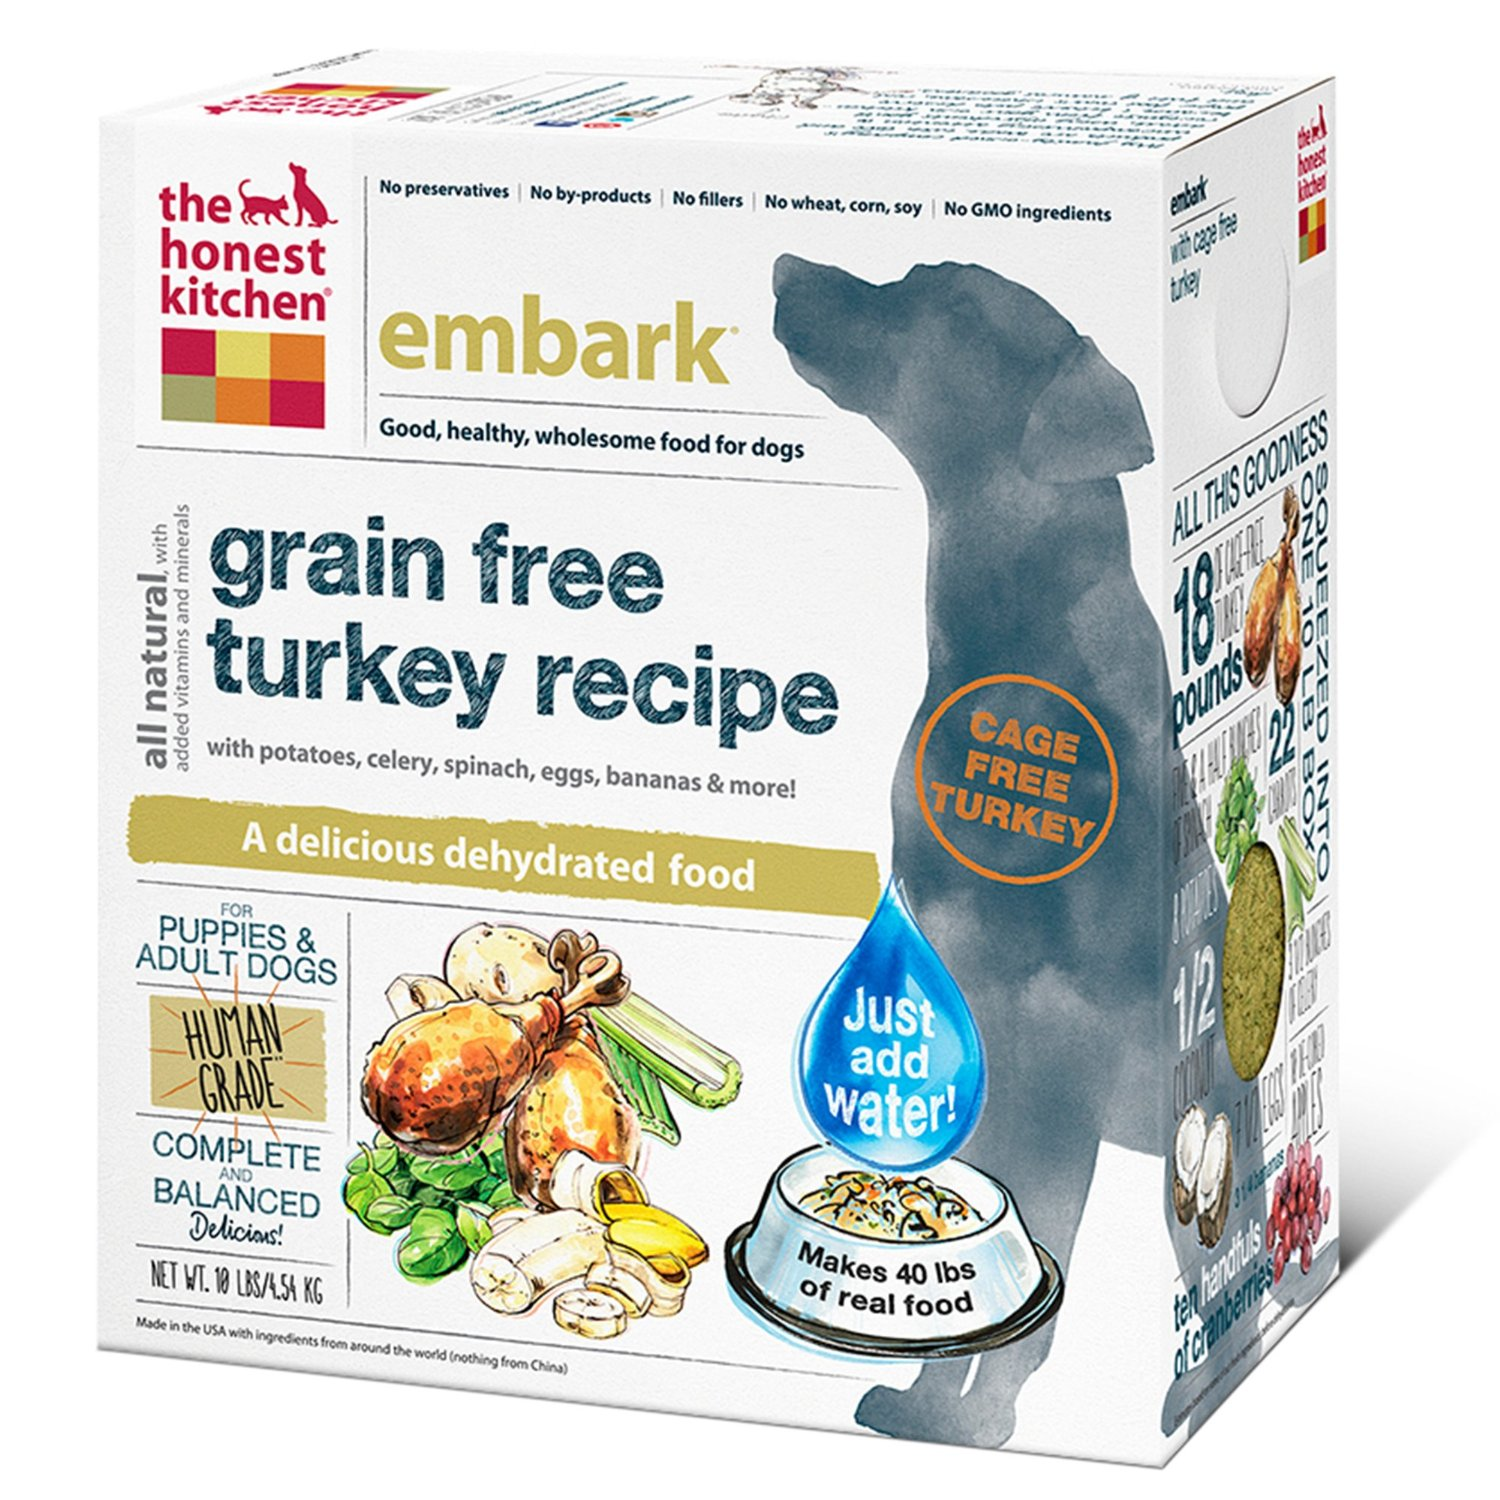 The Honest Kitchen Embark Dehydrated Dog Food 10lbs